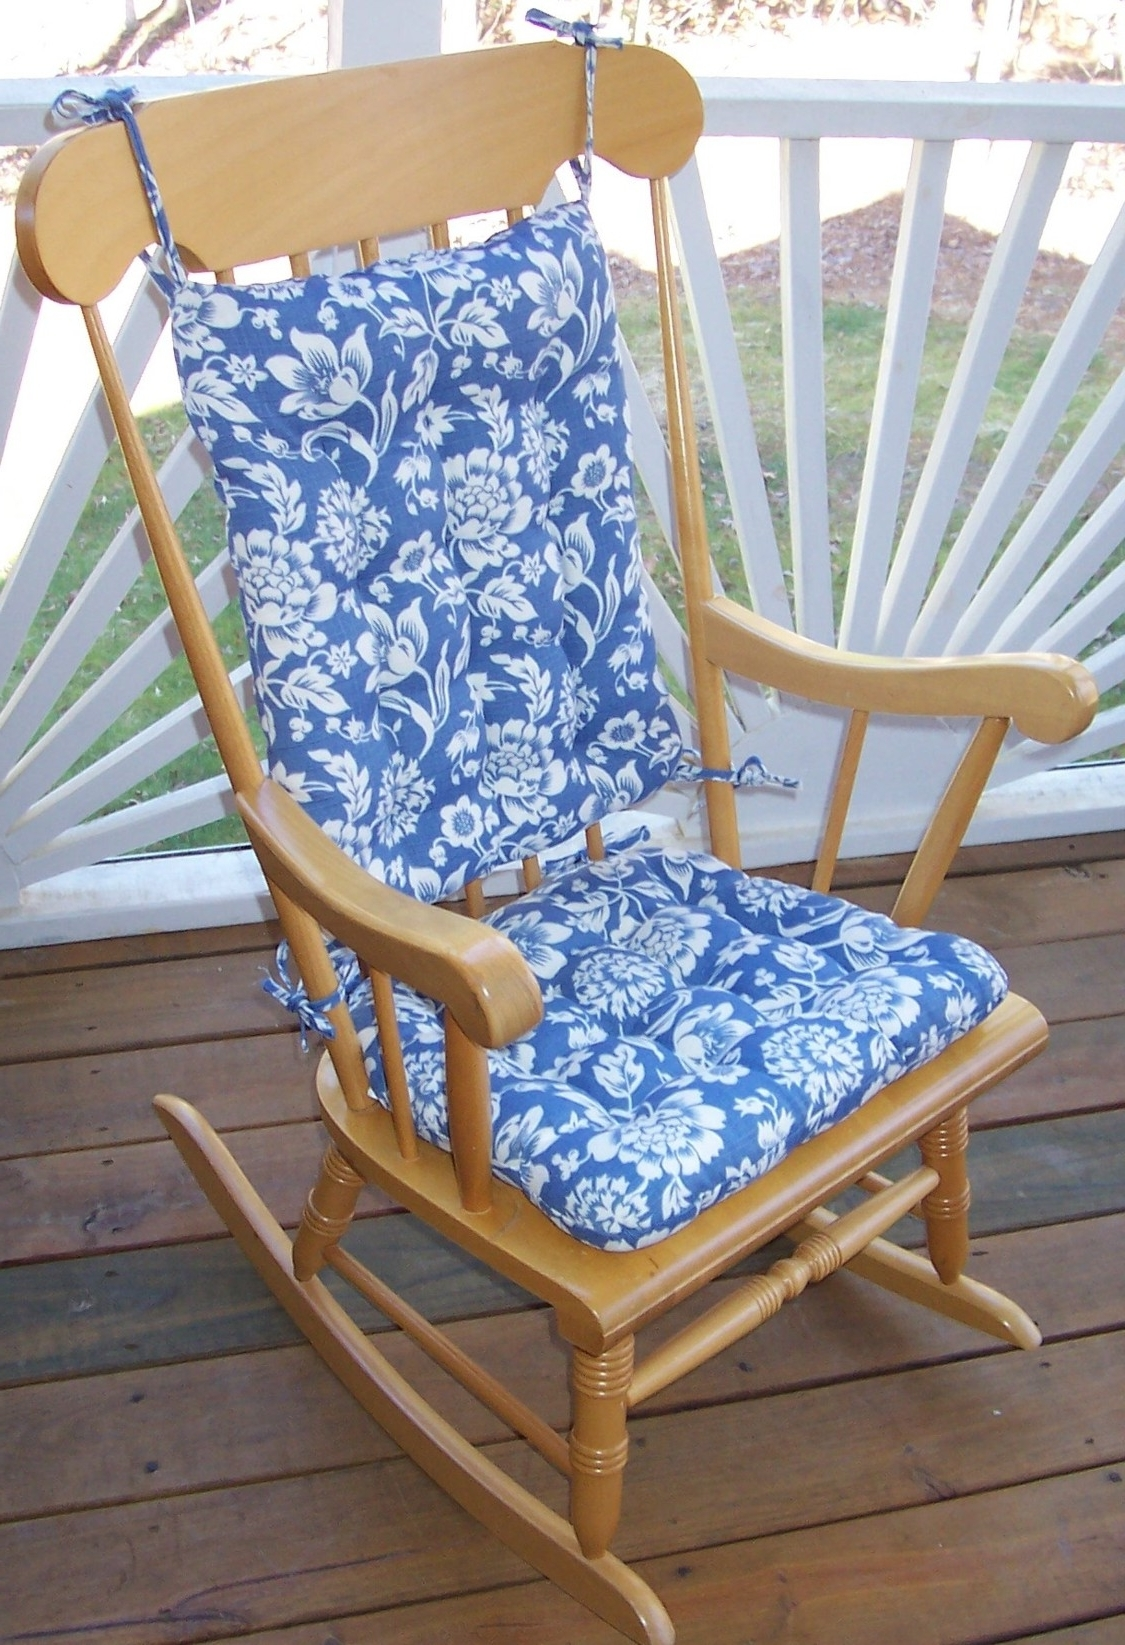 Most Recently Released Yellow Outdoor Rocking Chair Cushions – Chair Design Ideas Inside Yellow Outdoor Rocking Chairs (View 3 of 15)